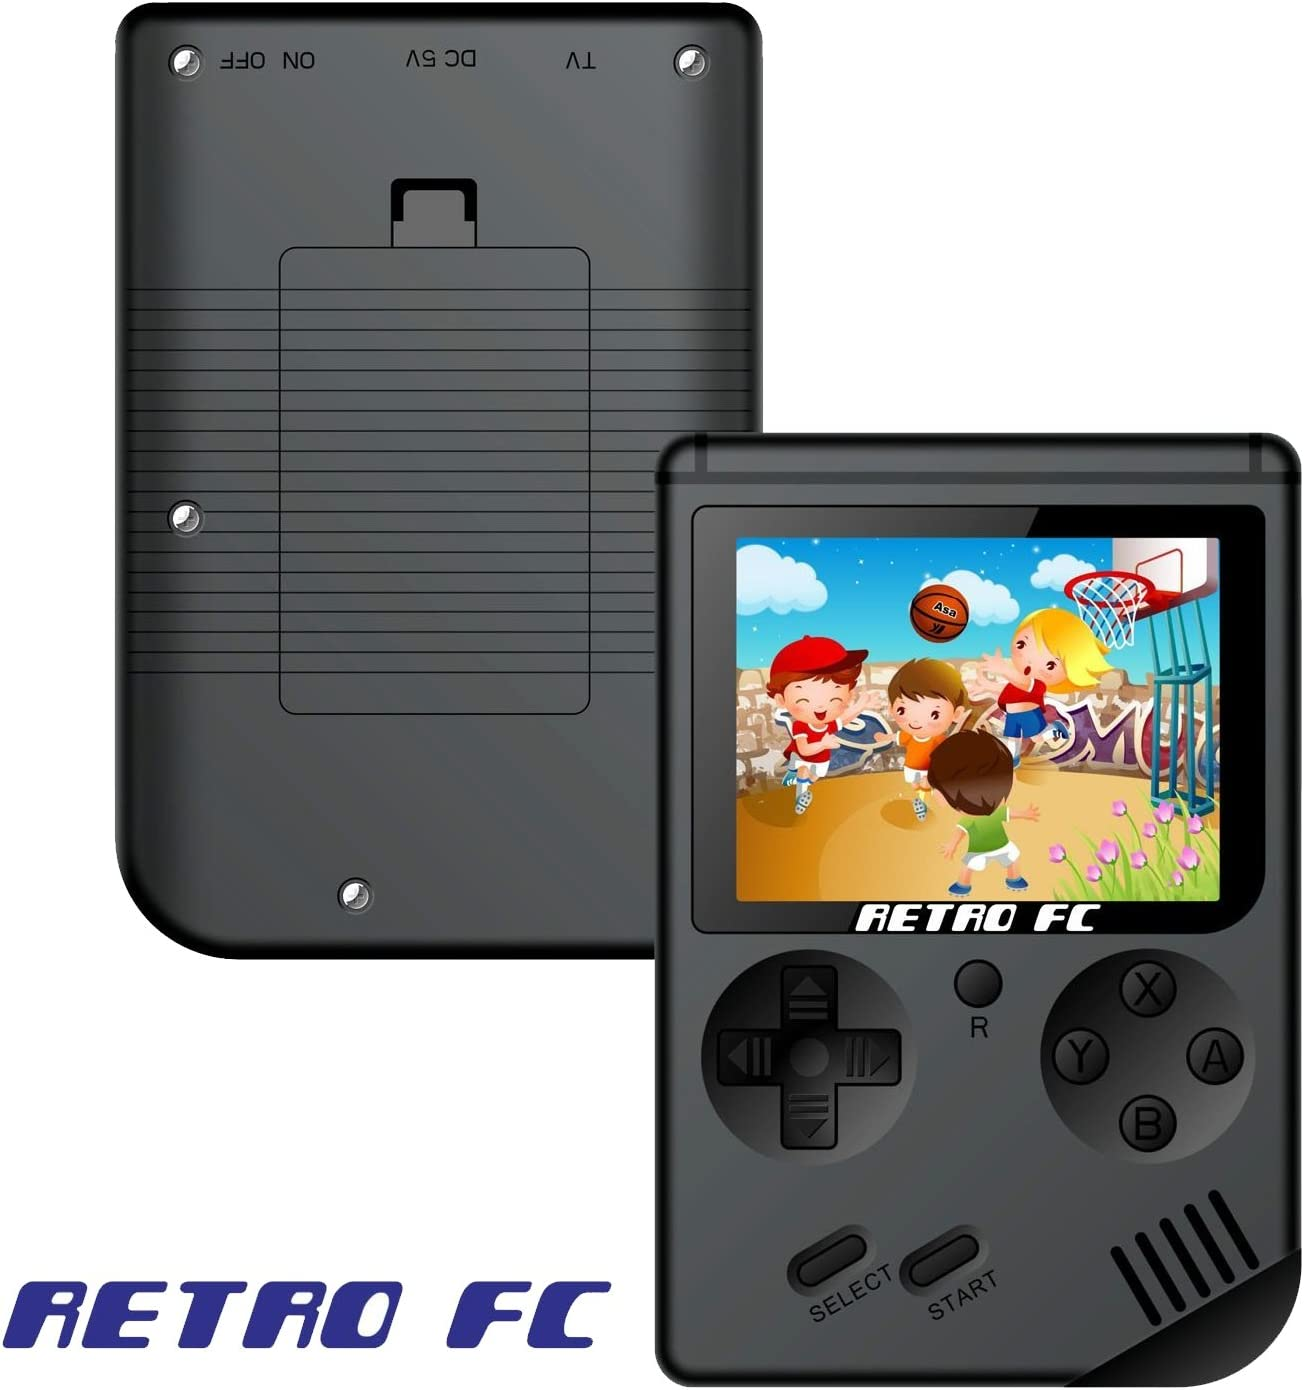 Handheld Game Console Portable Classic FC Game Player 3-inch Screen Mini Retro Pocket Console 168 8-bit Digital Video Games Black AV Cable Playing on TV